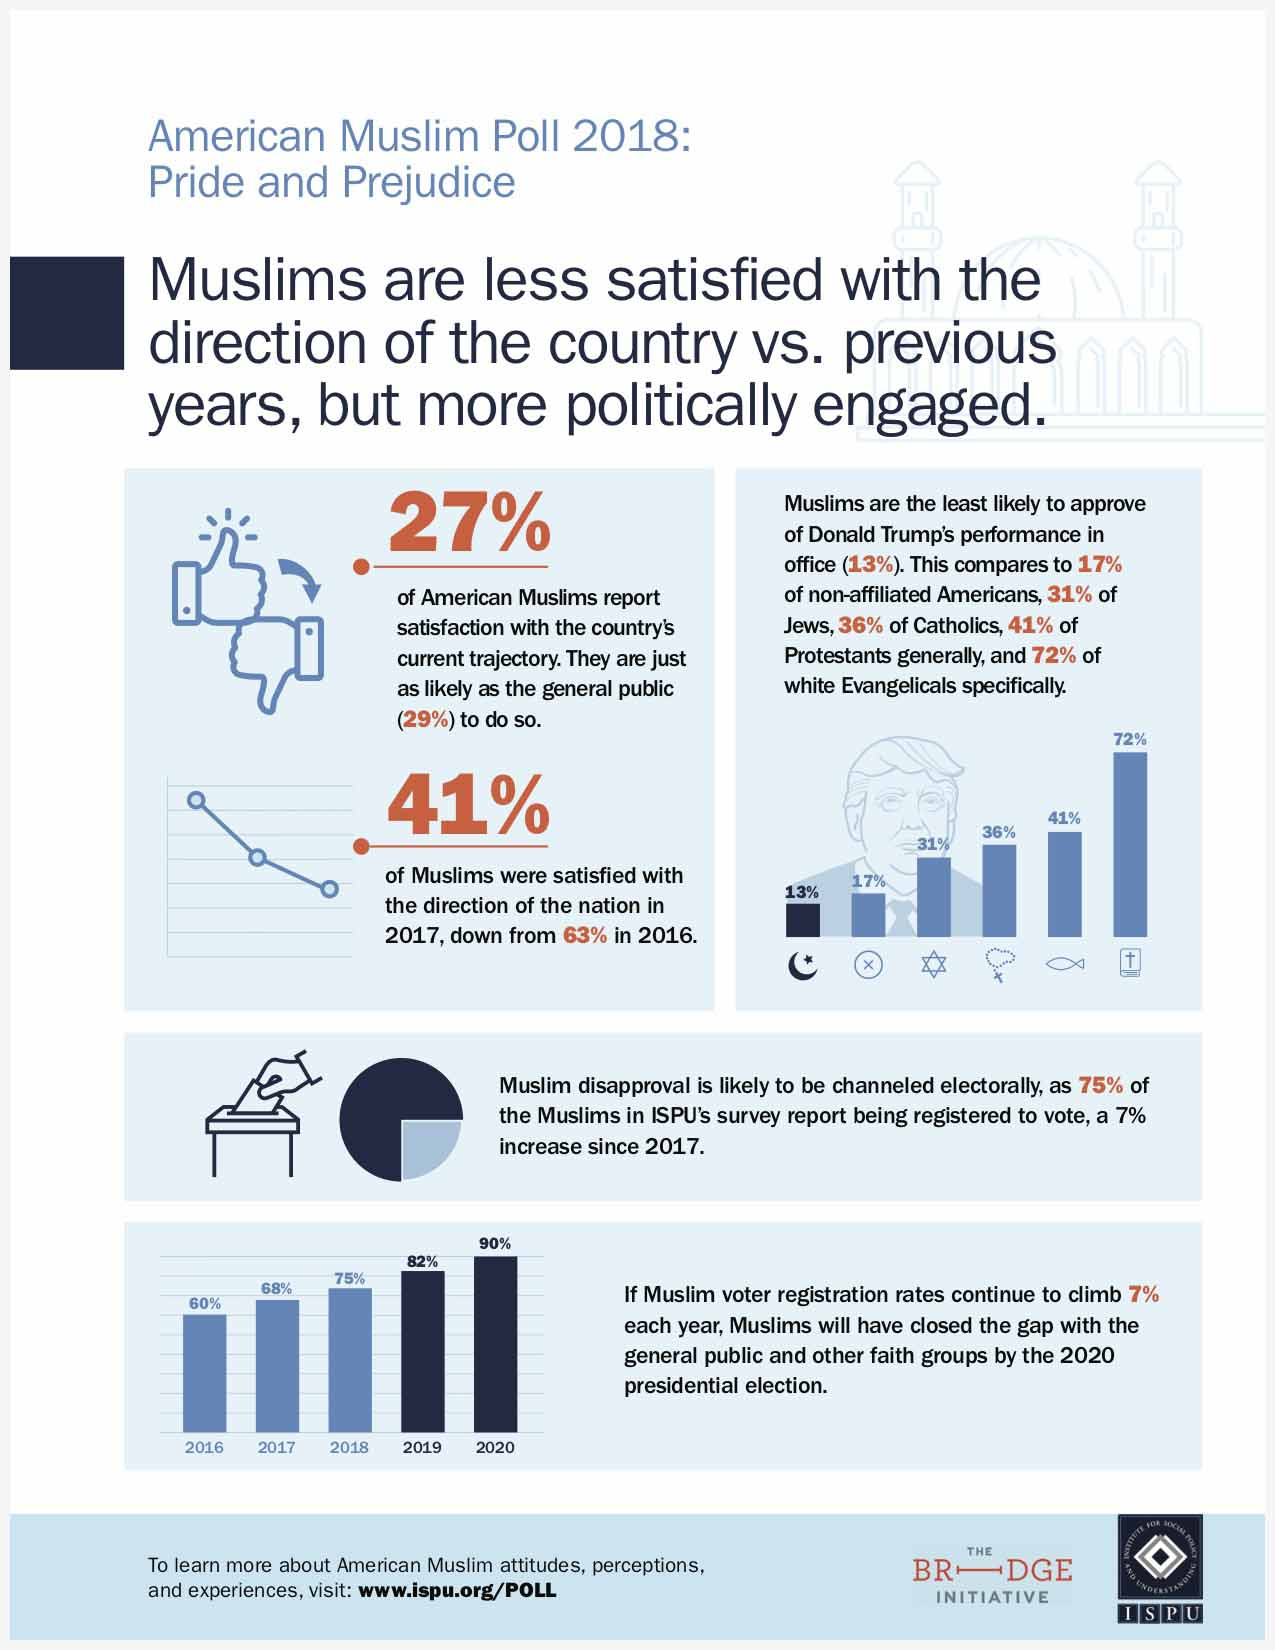 Muslims are less satisfied with the direction of the country vs previous years, but more politically engaged graphic